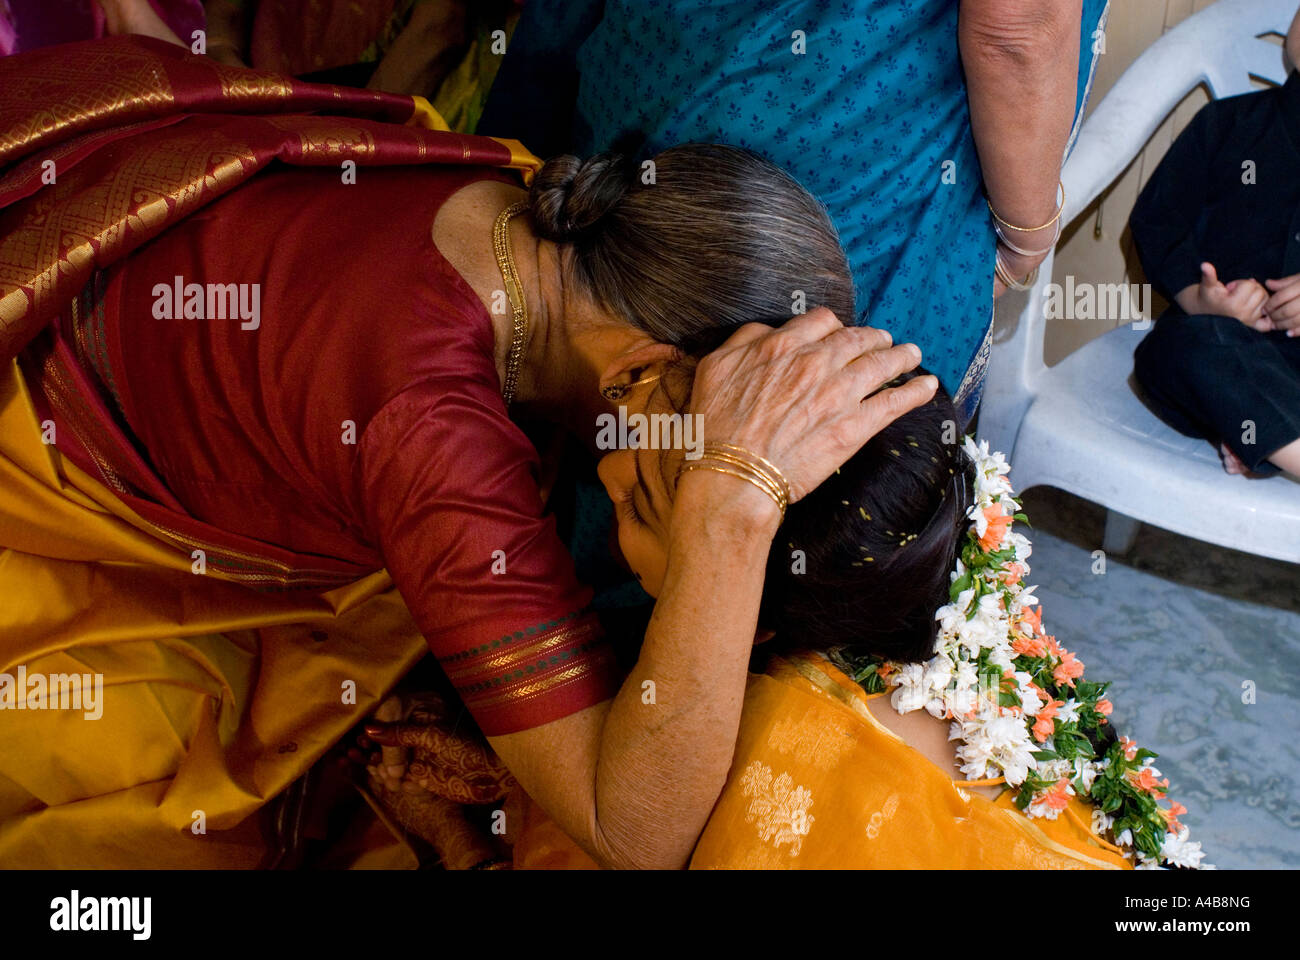 Stock image of traditional Hindu wedding bride receiving blessings from female relatives in Hyderabad India - Stock Image